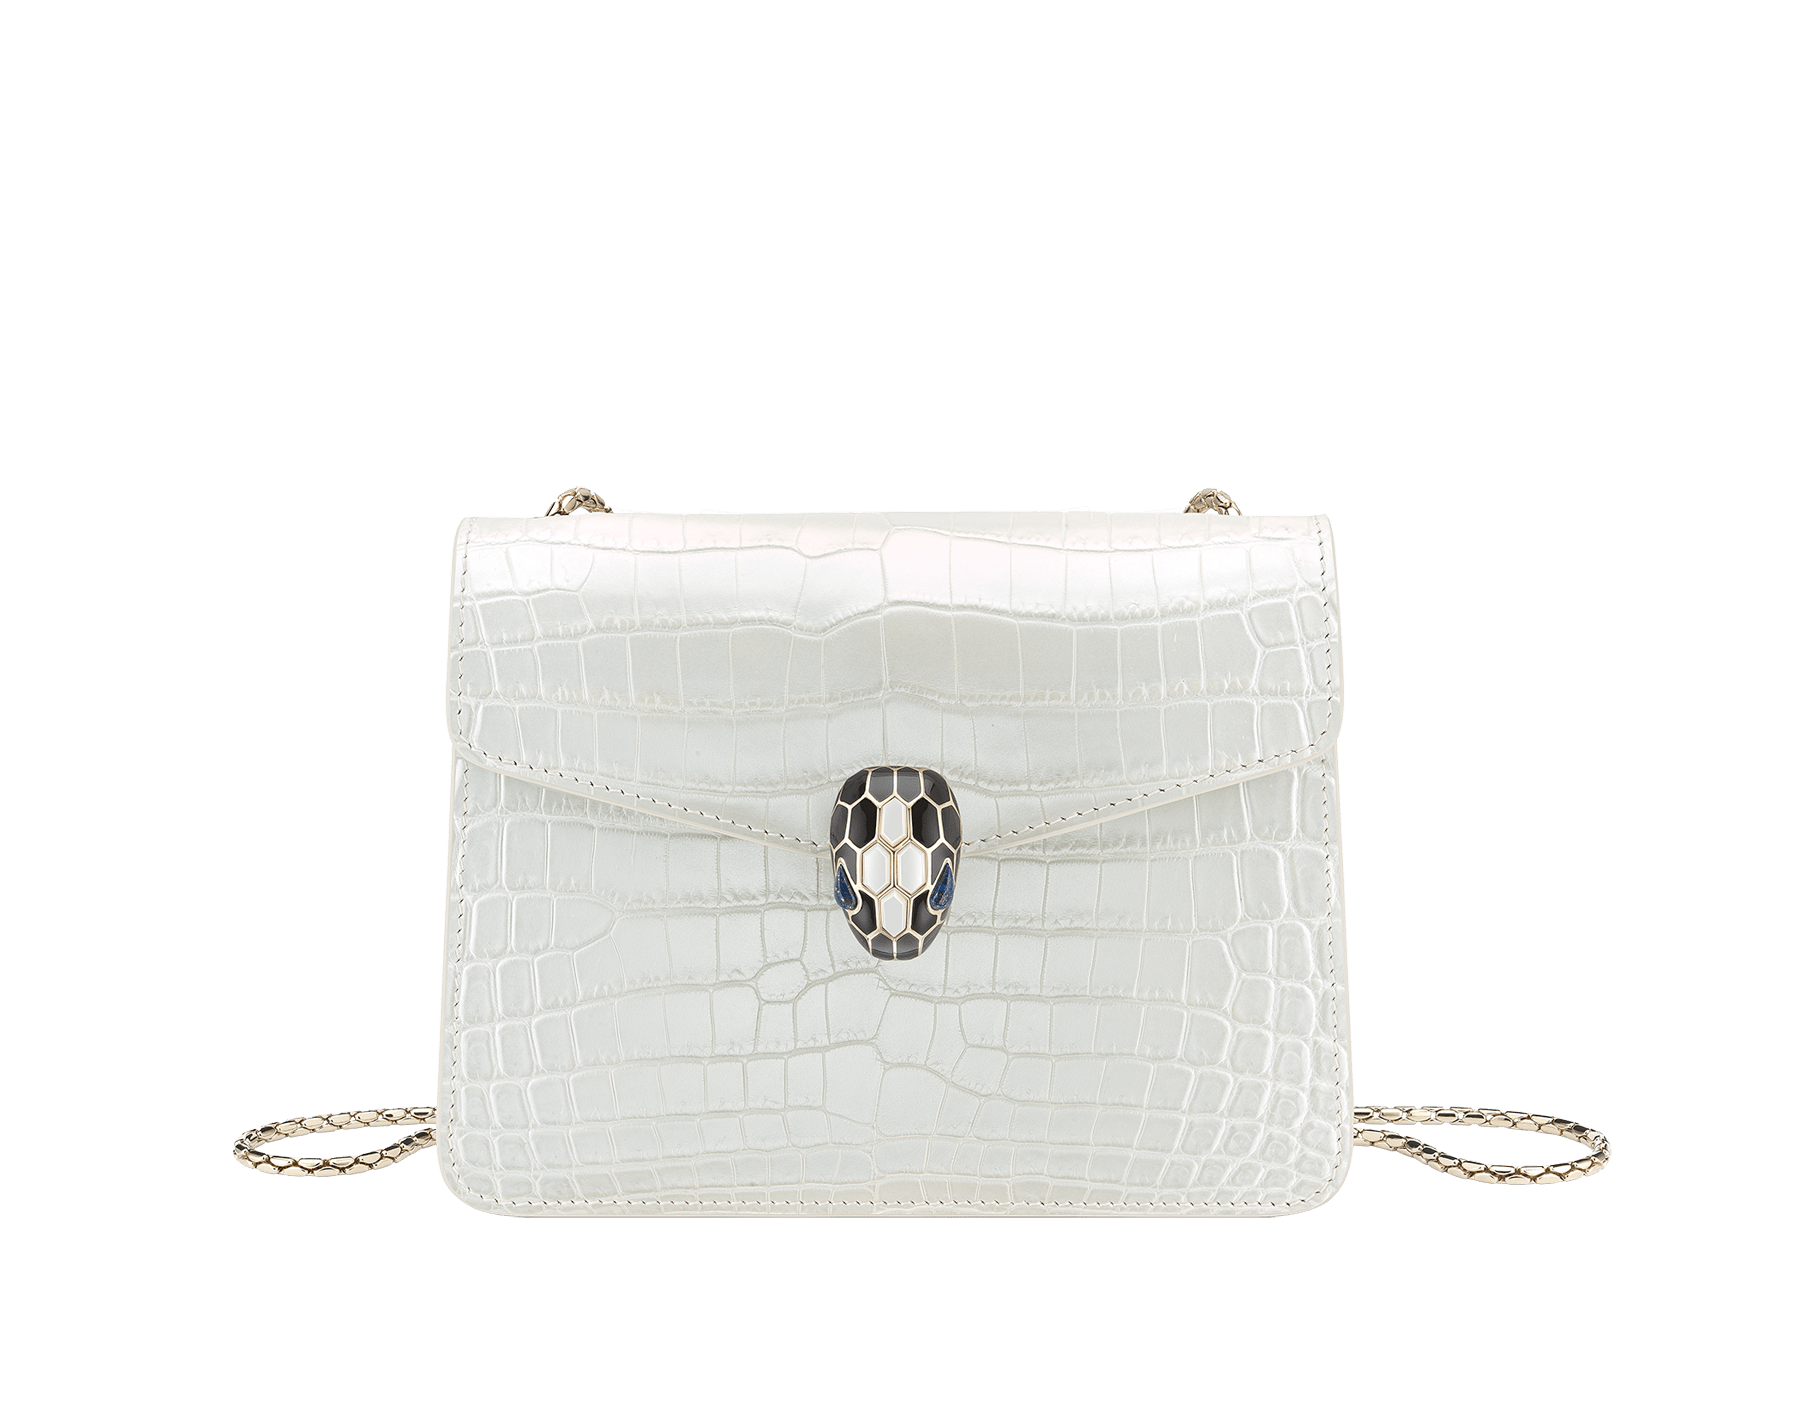 """Serpenti Forever"" crossbody bag in white agate crocodile skin with an iridescent and pearled effect. Iconic snake head closure in light gold plated brass enriched with black enamel and mother-of-pearl scales, and blue lapis lazuli eyes. 289850 image 1"